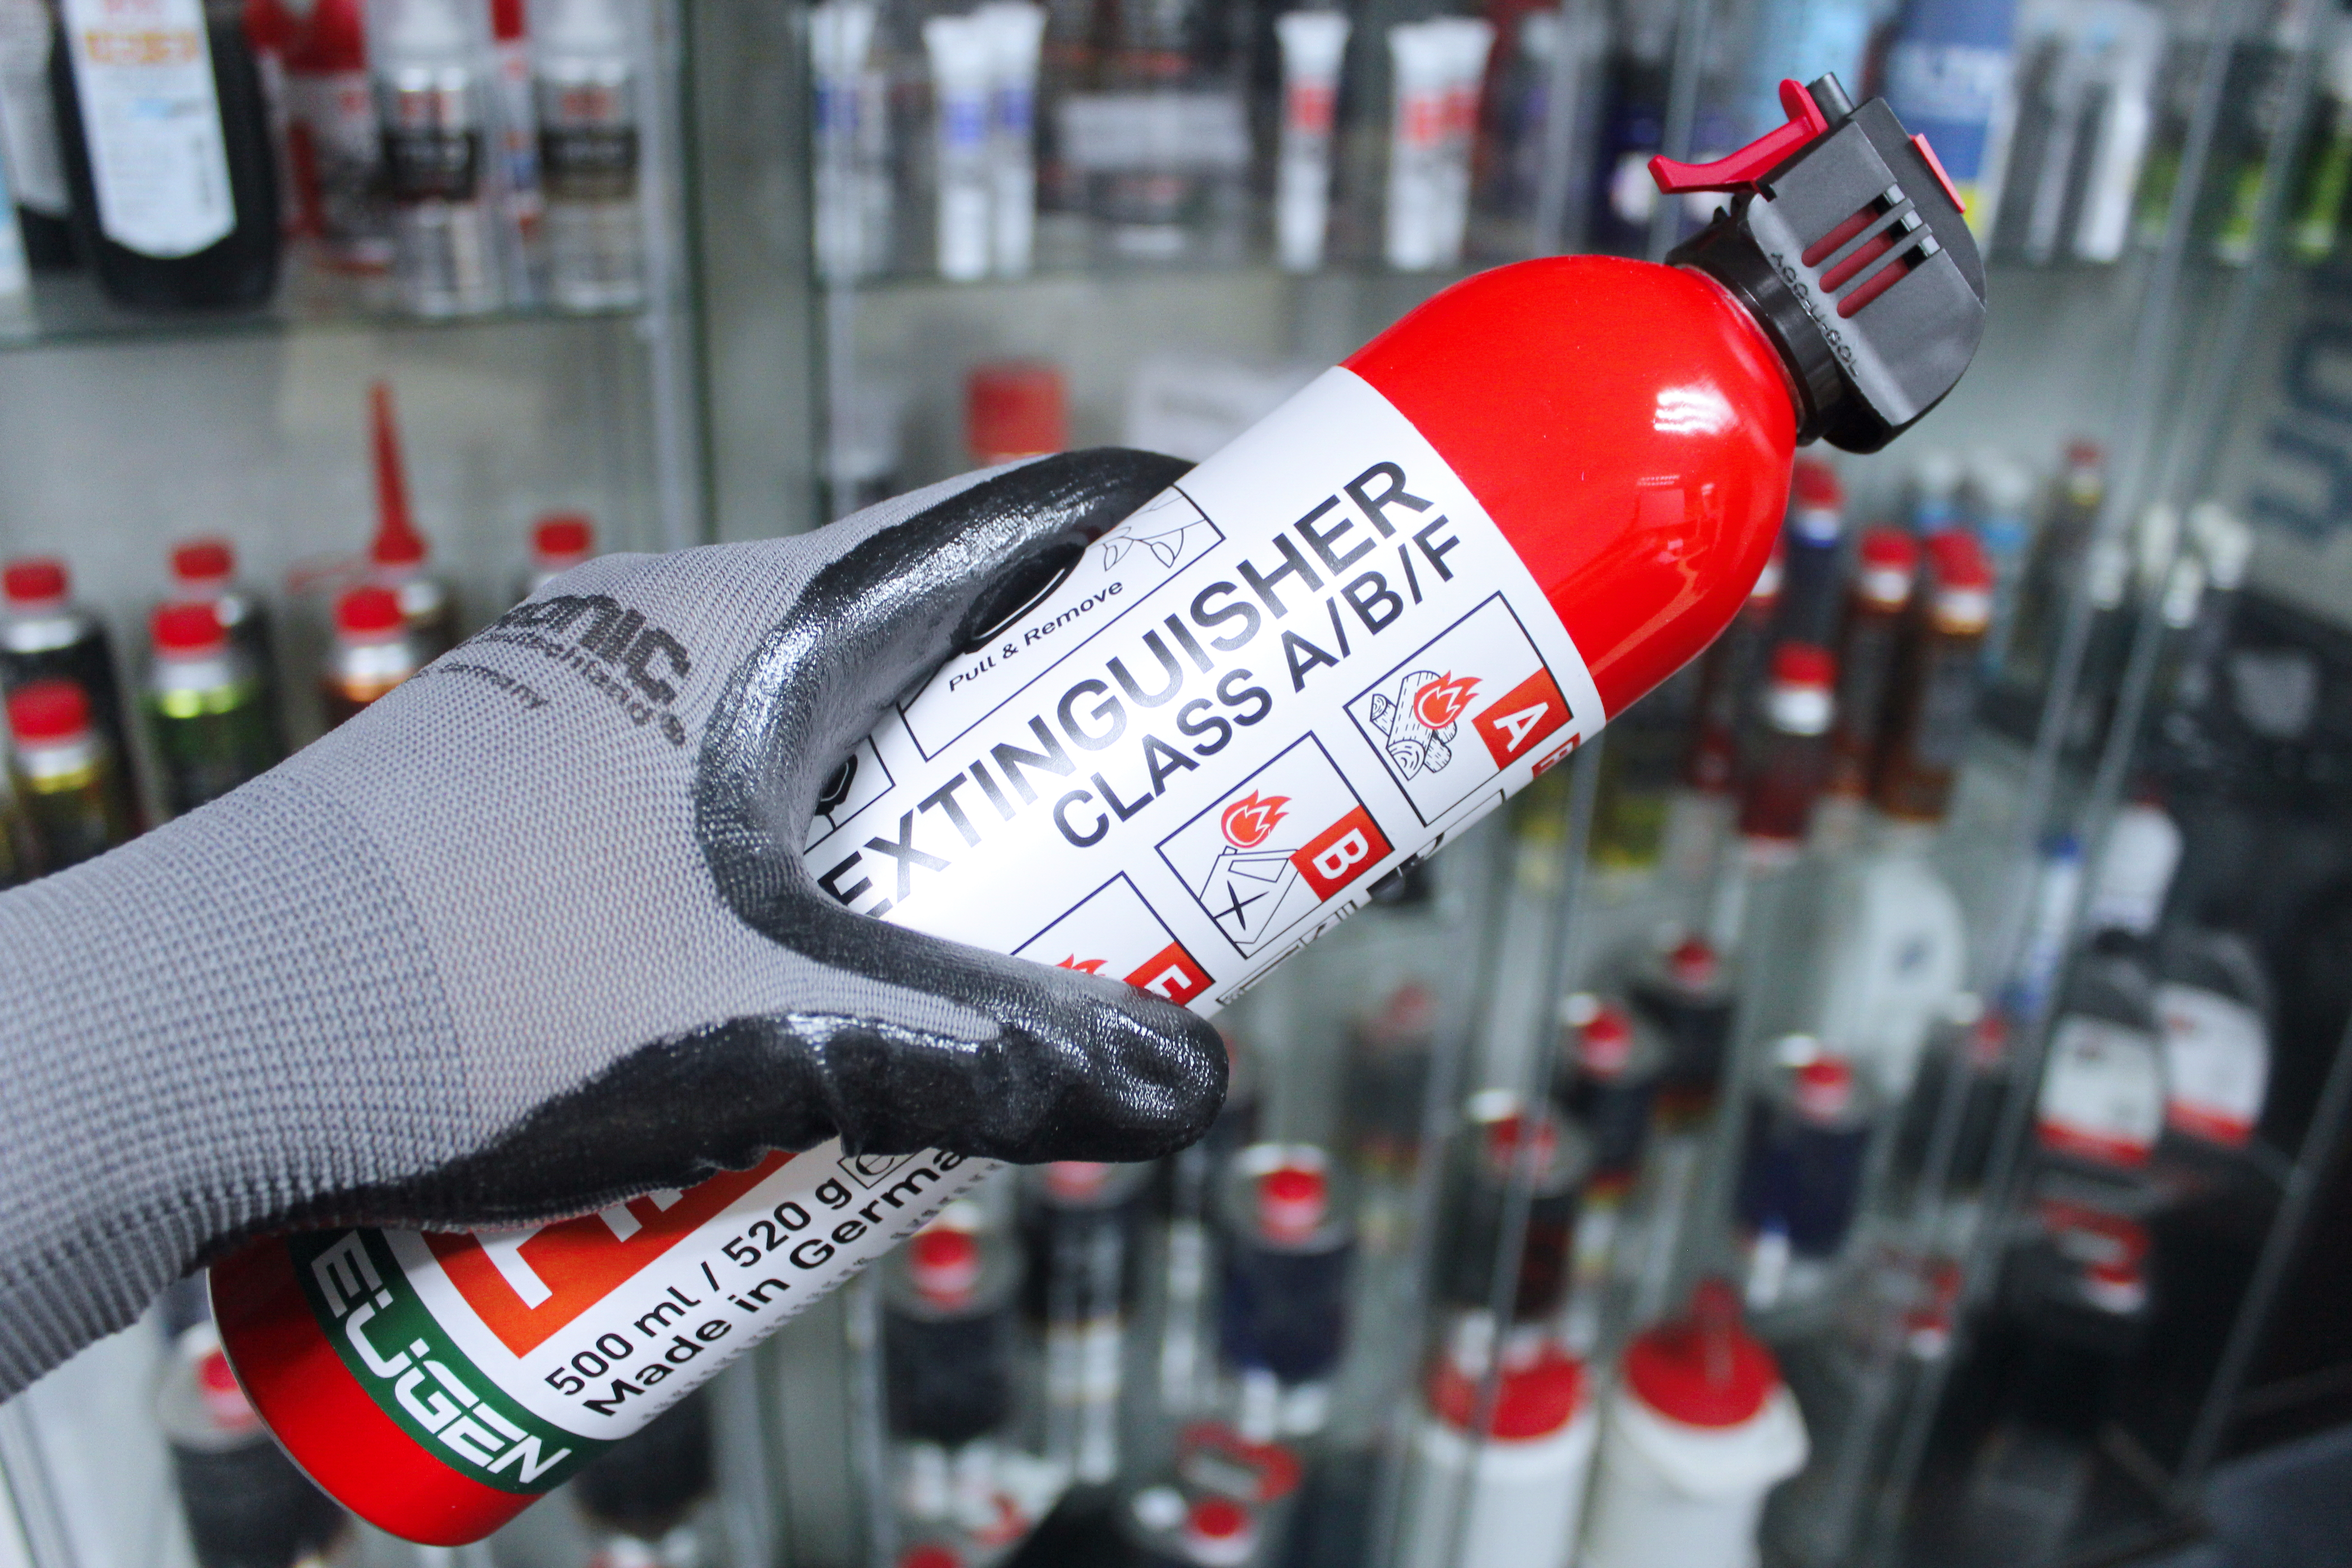 EUGEN Fire Extinguisher